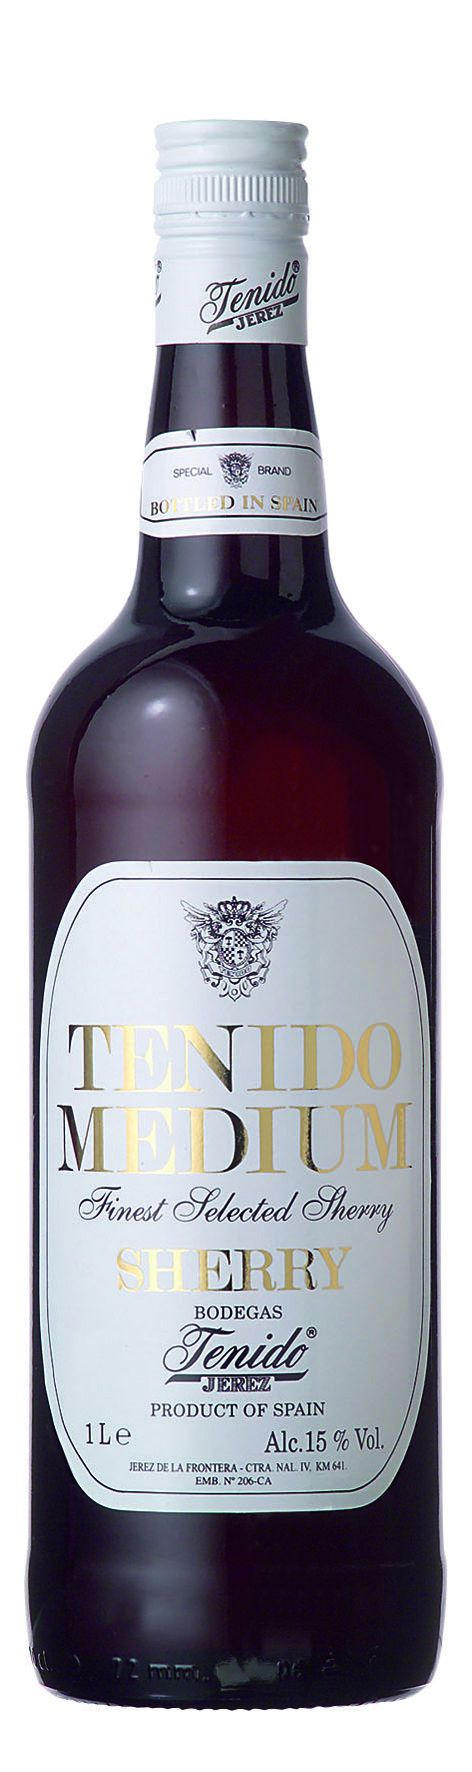 Tenido sherry medium 1 liter